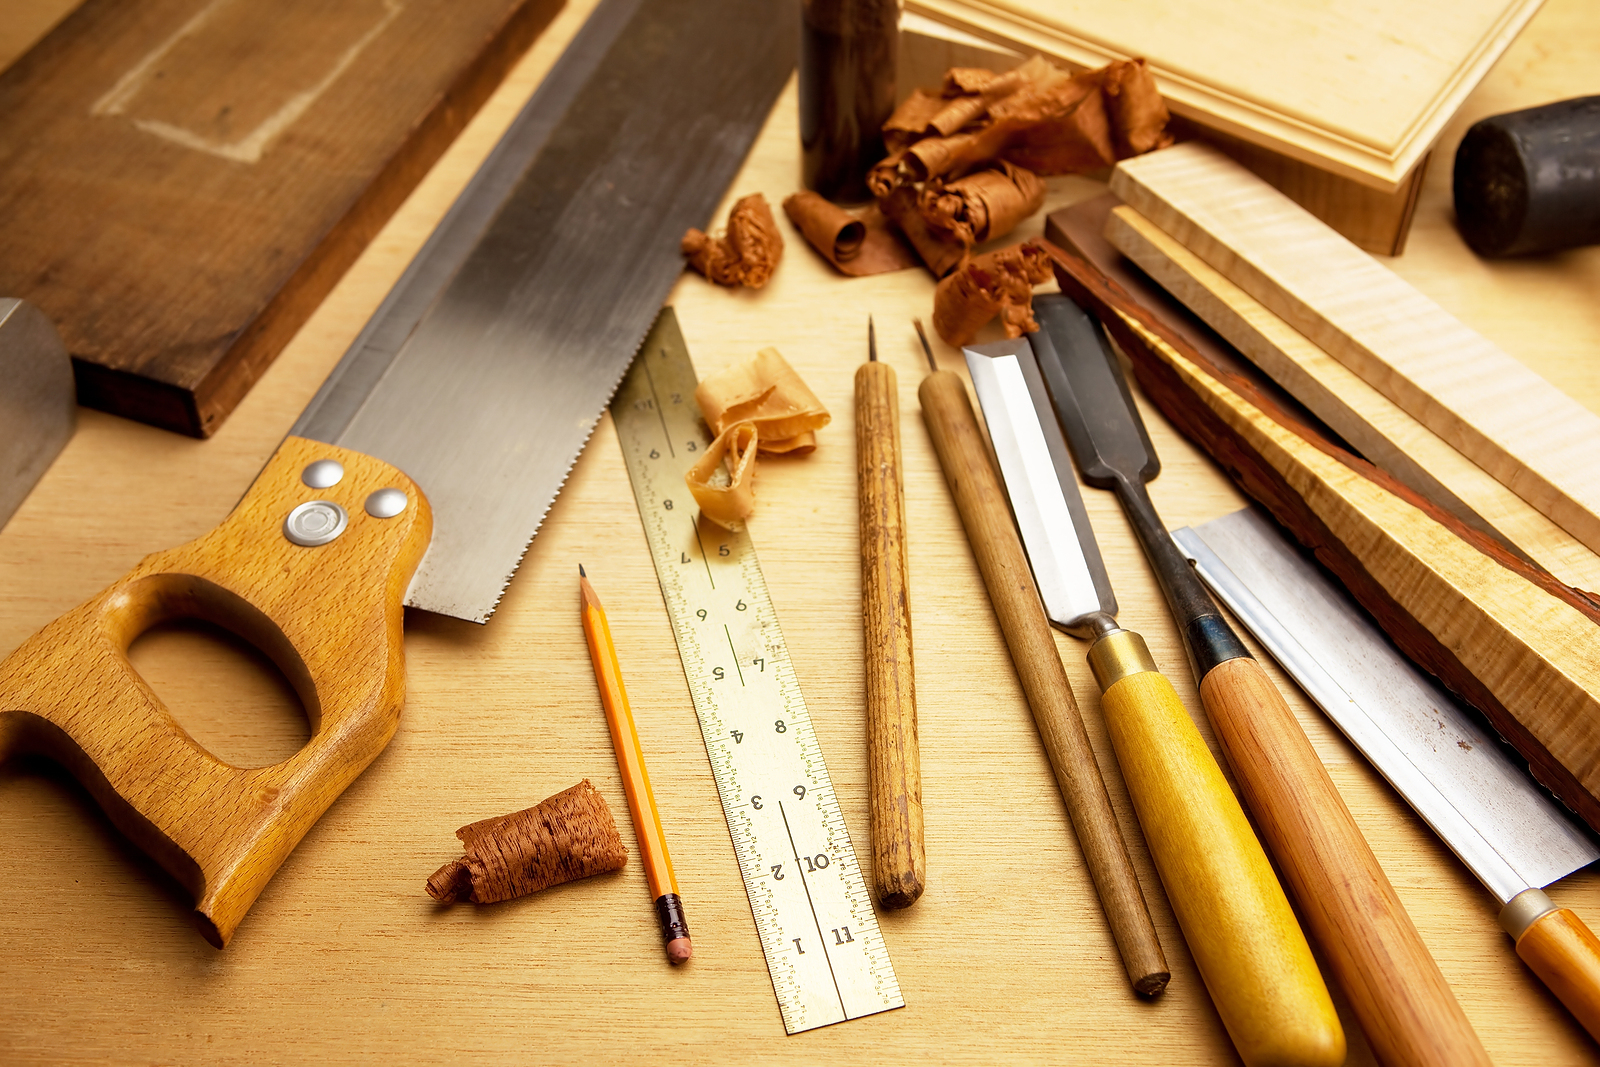 Woodworking Basics II